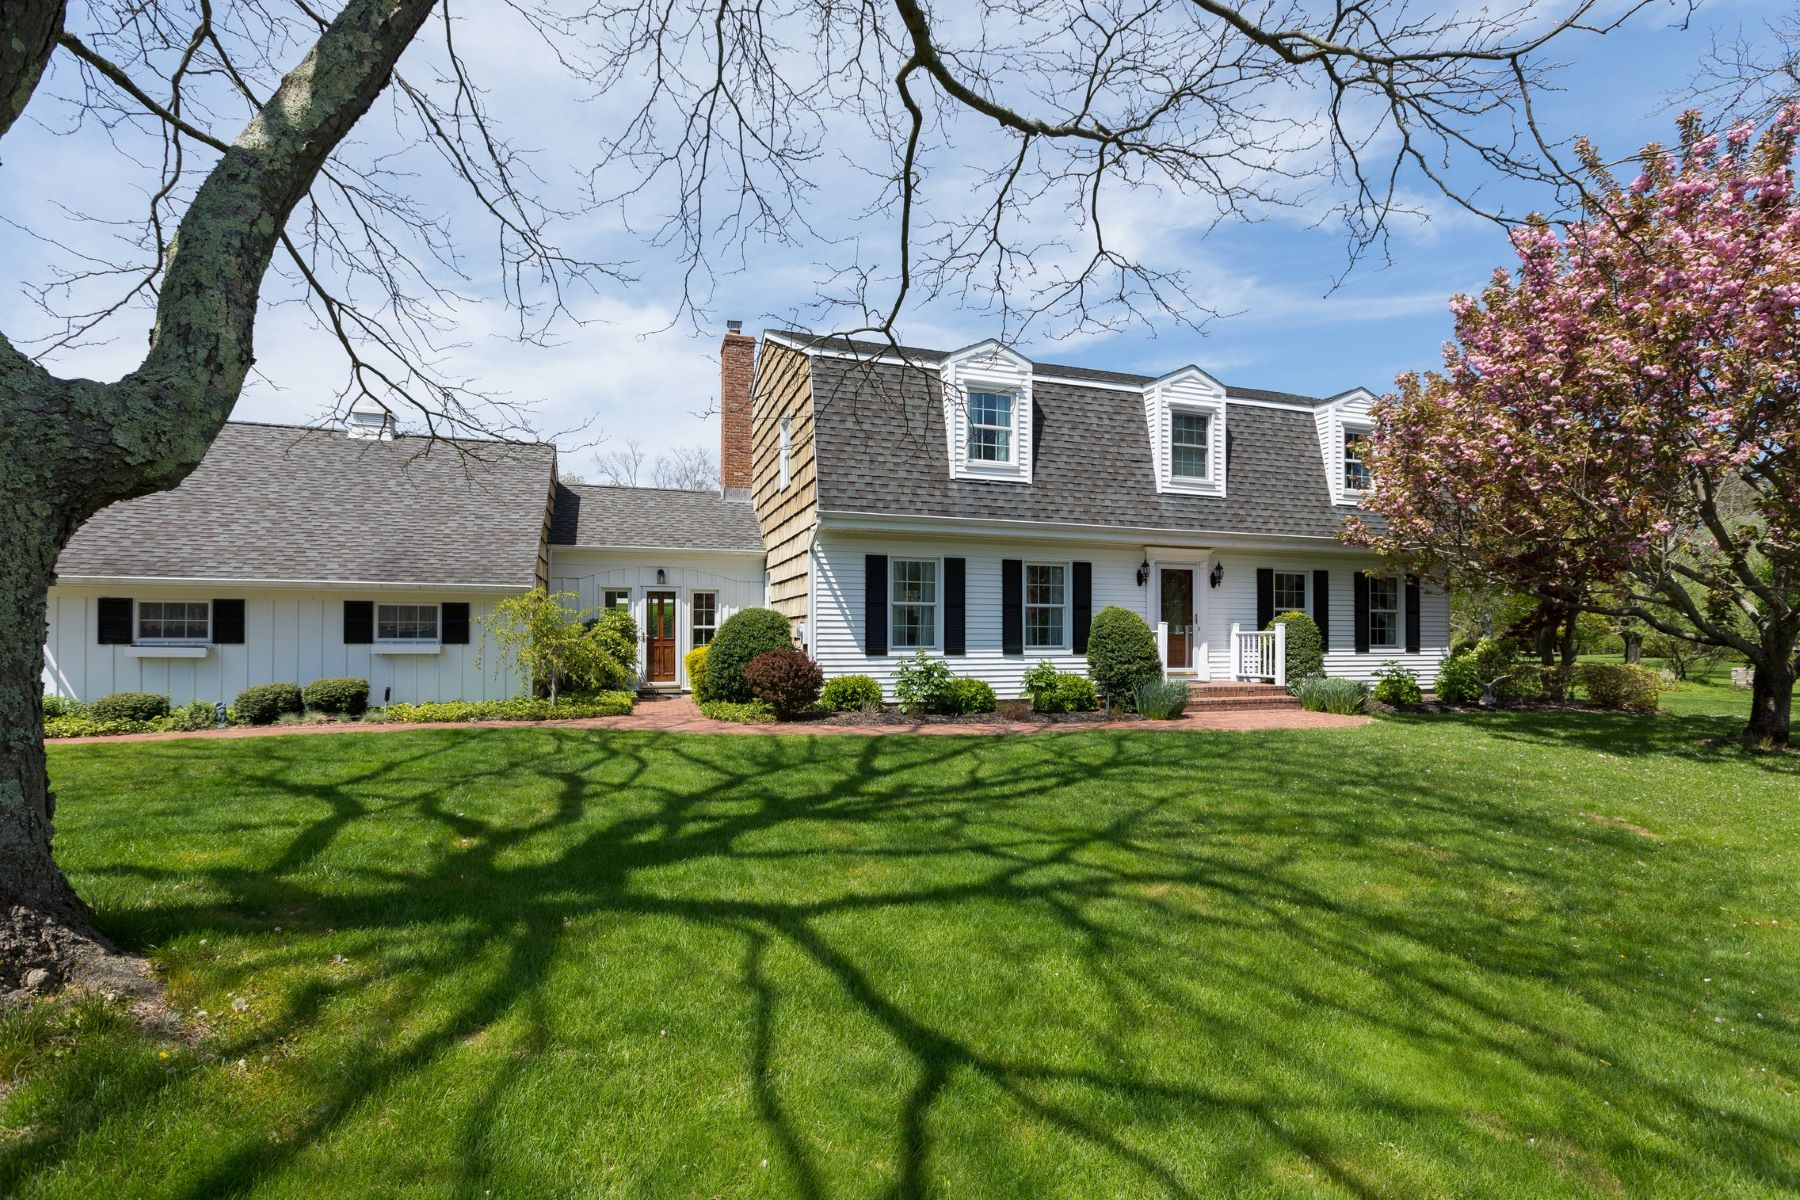 Single Family Homes for Active at Southold 215 Garden Ct Southold, New York 11971 United States